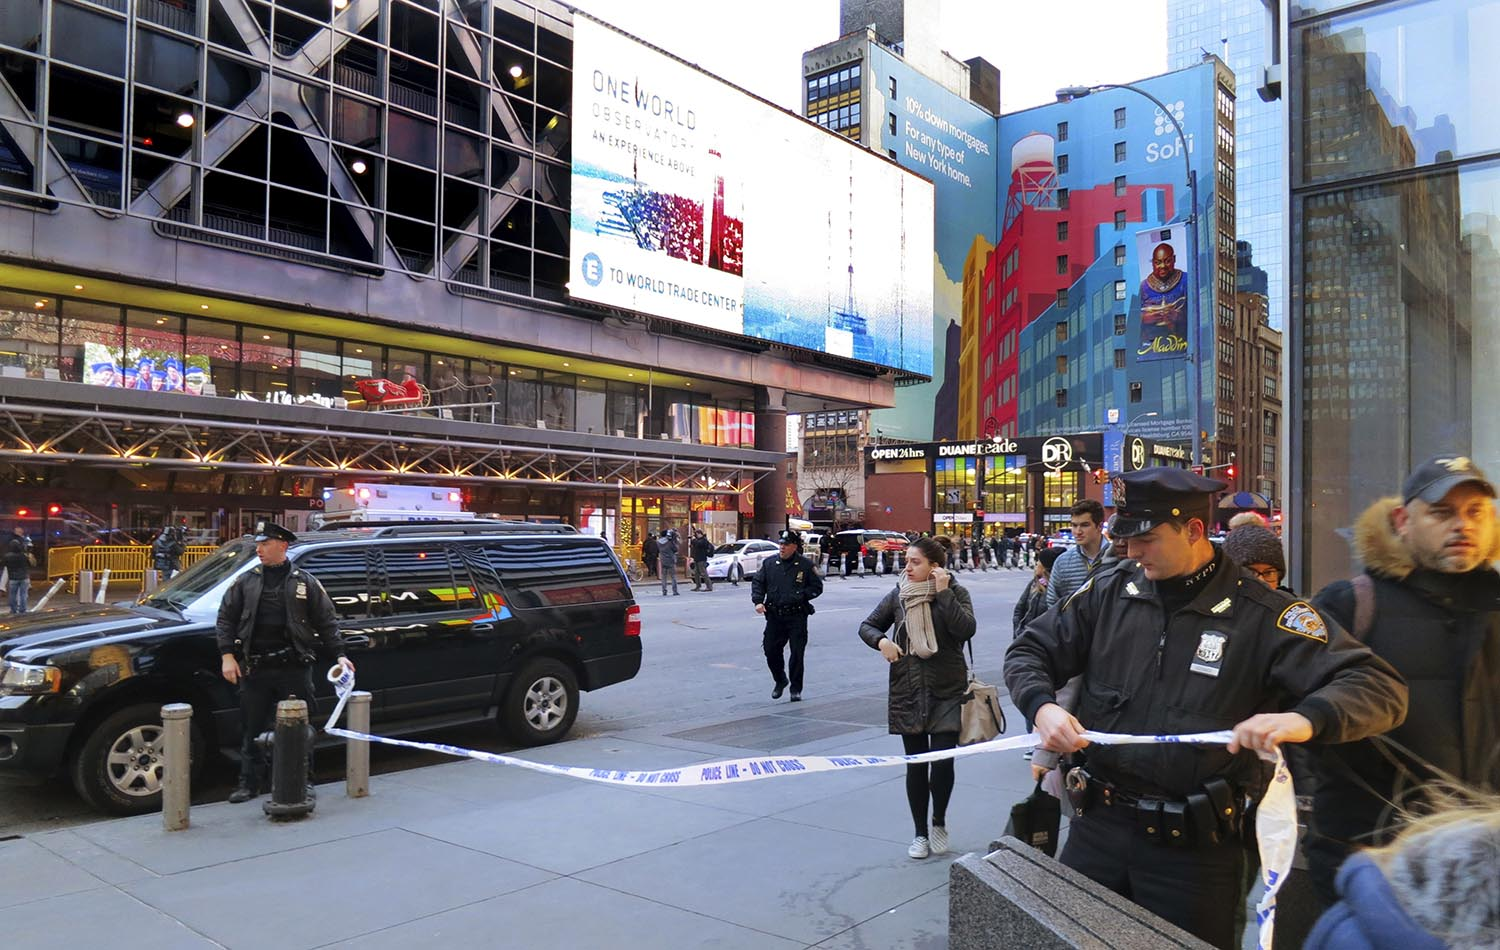 "<div class=""meta image-caption""><div class=""origin-logo origin-image ap""><span>AP</span></div><span class=""caption-text"">Police secure Eighth Avenue outside the Port Authority Bus Terminal following an explosion near New York's Times Square on Monday, Dec. 11, 2017. (AP Photo/Chuck Zoeller)</span></div>"